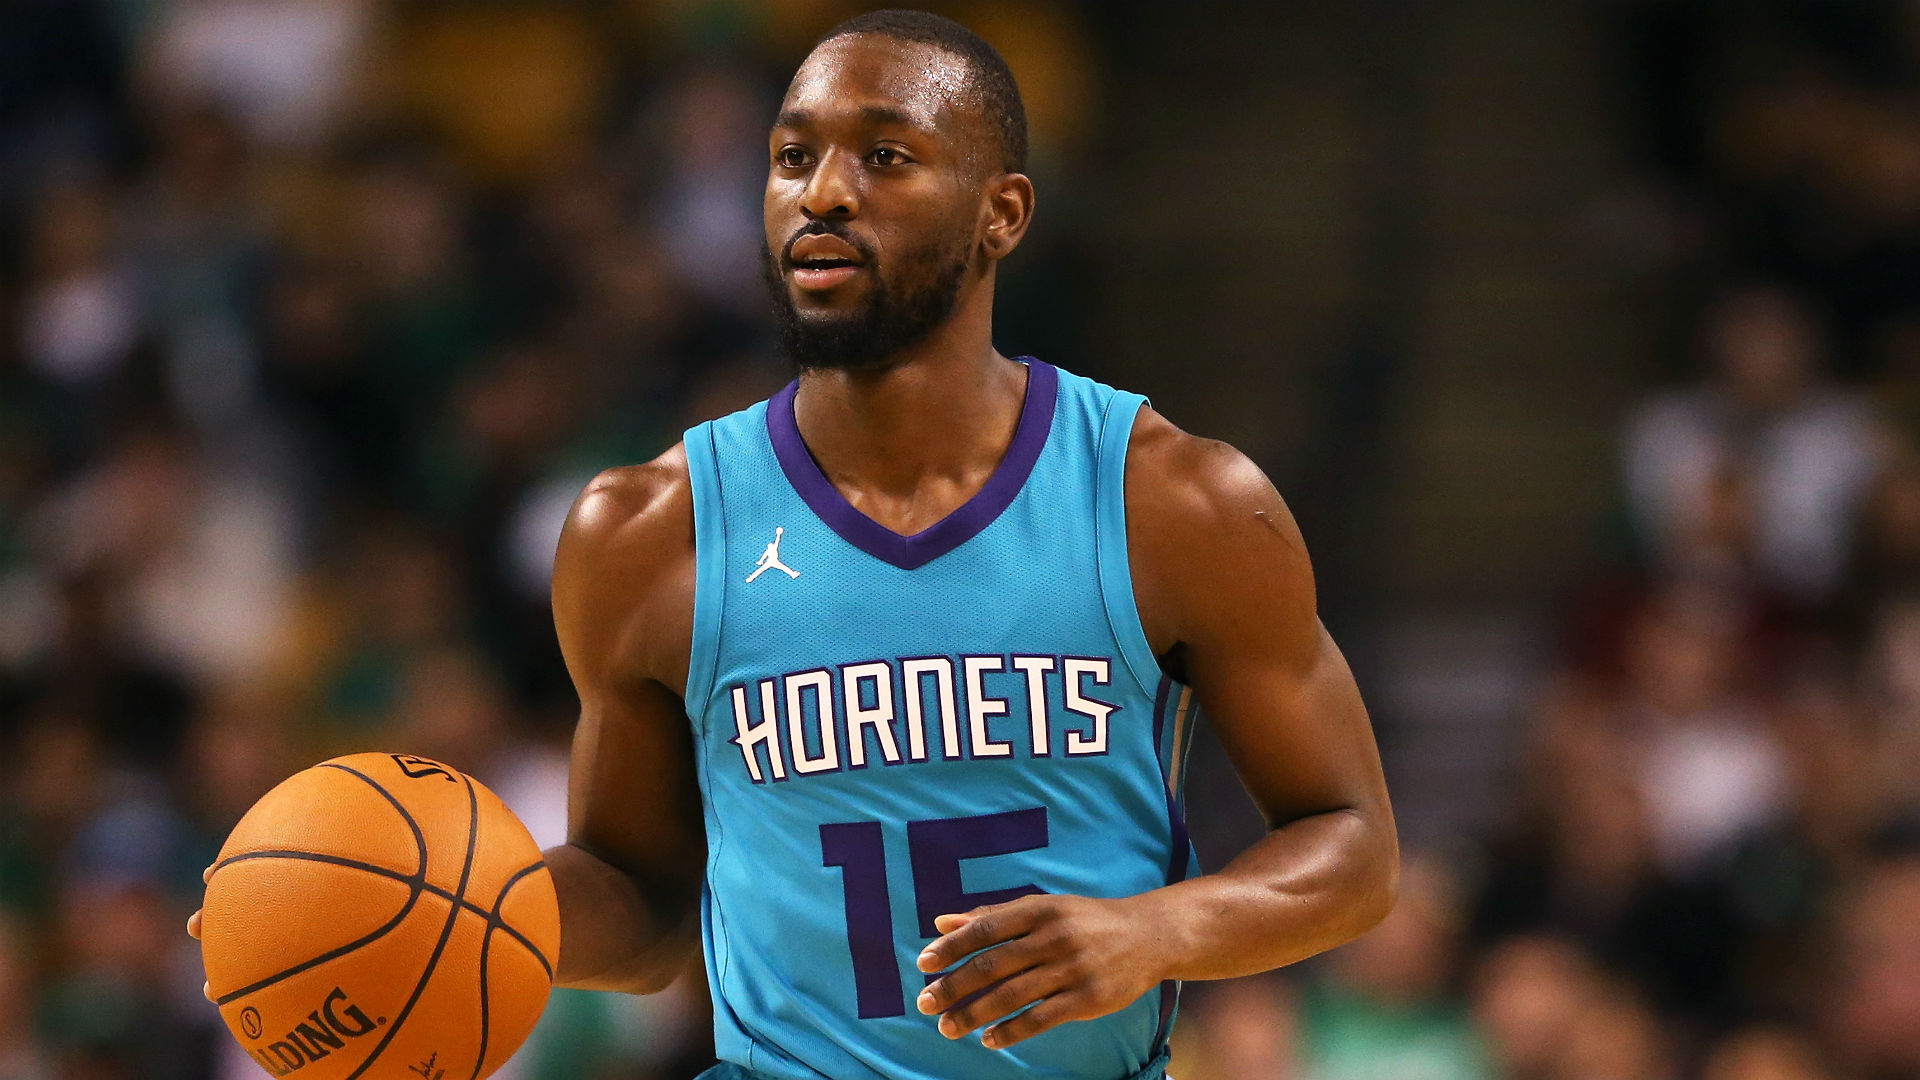 Hornets star Kemba Walker to attend NBA Finals party in Japan